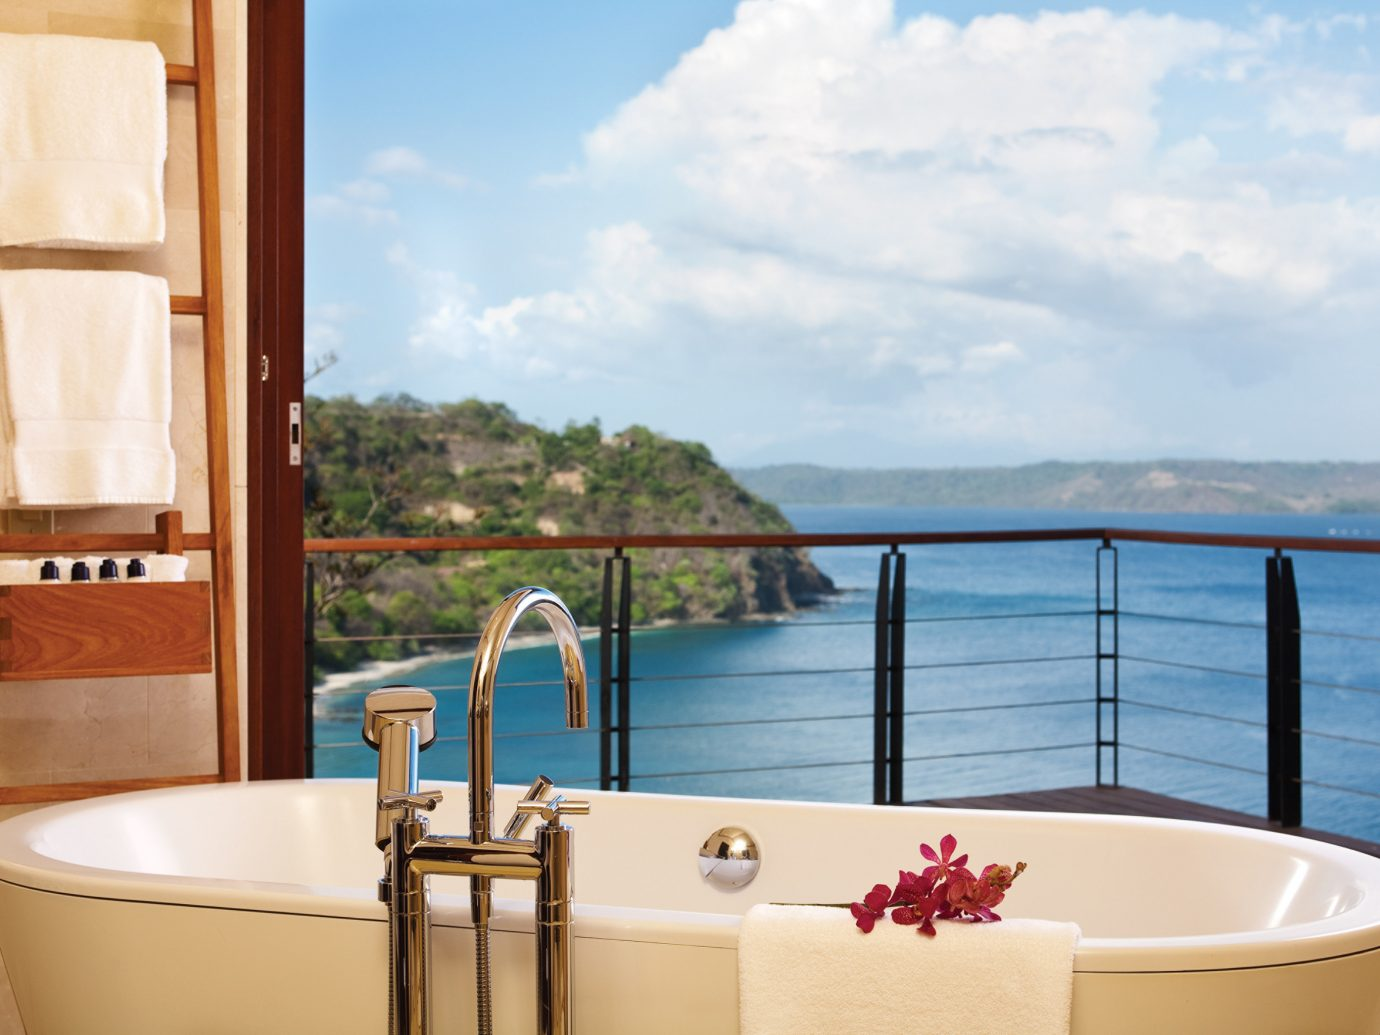 Bathtub and view at the Four Seasons Costa Rica